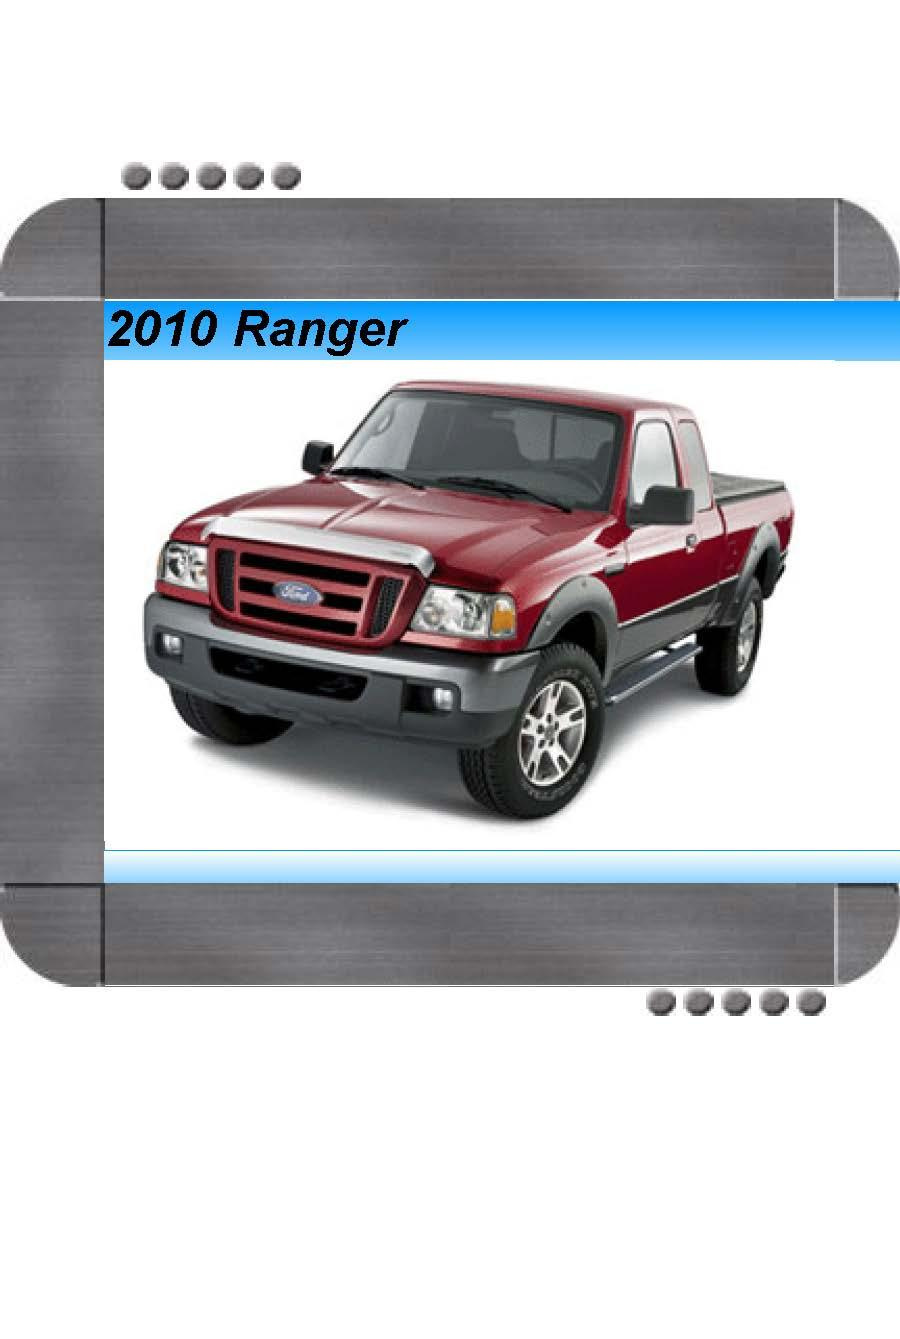 Ford Ranger 2010 Factory Service & Shop Manual | Quality ...